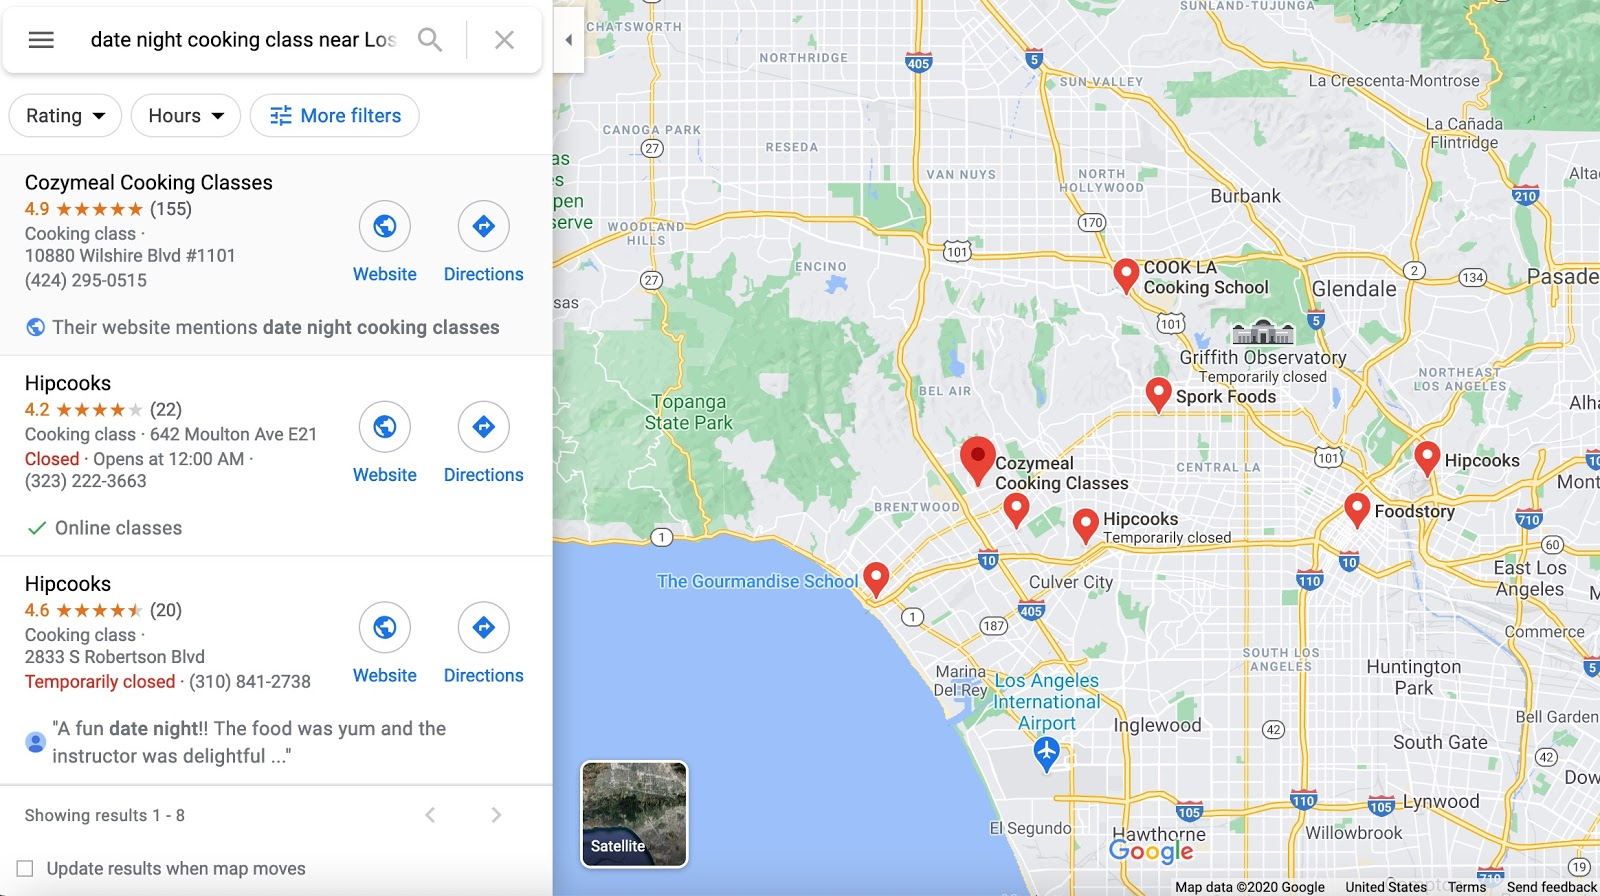 Google Map - Local Search for cooking classes